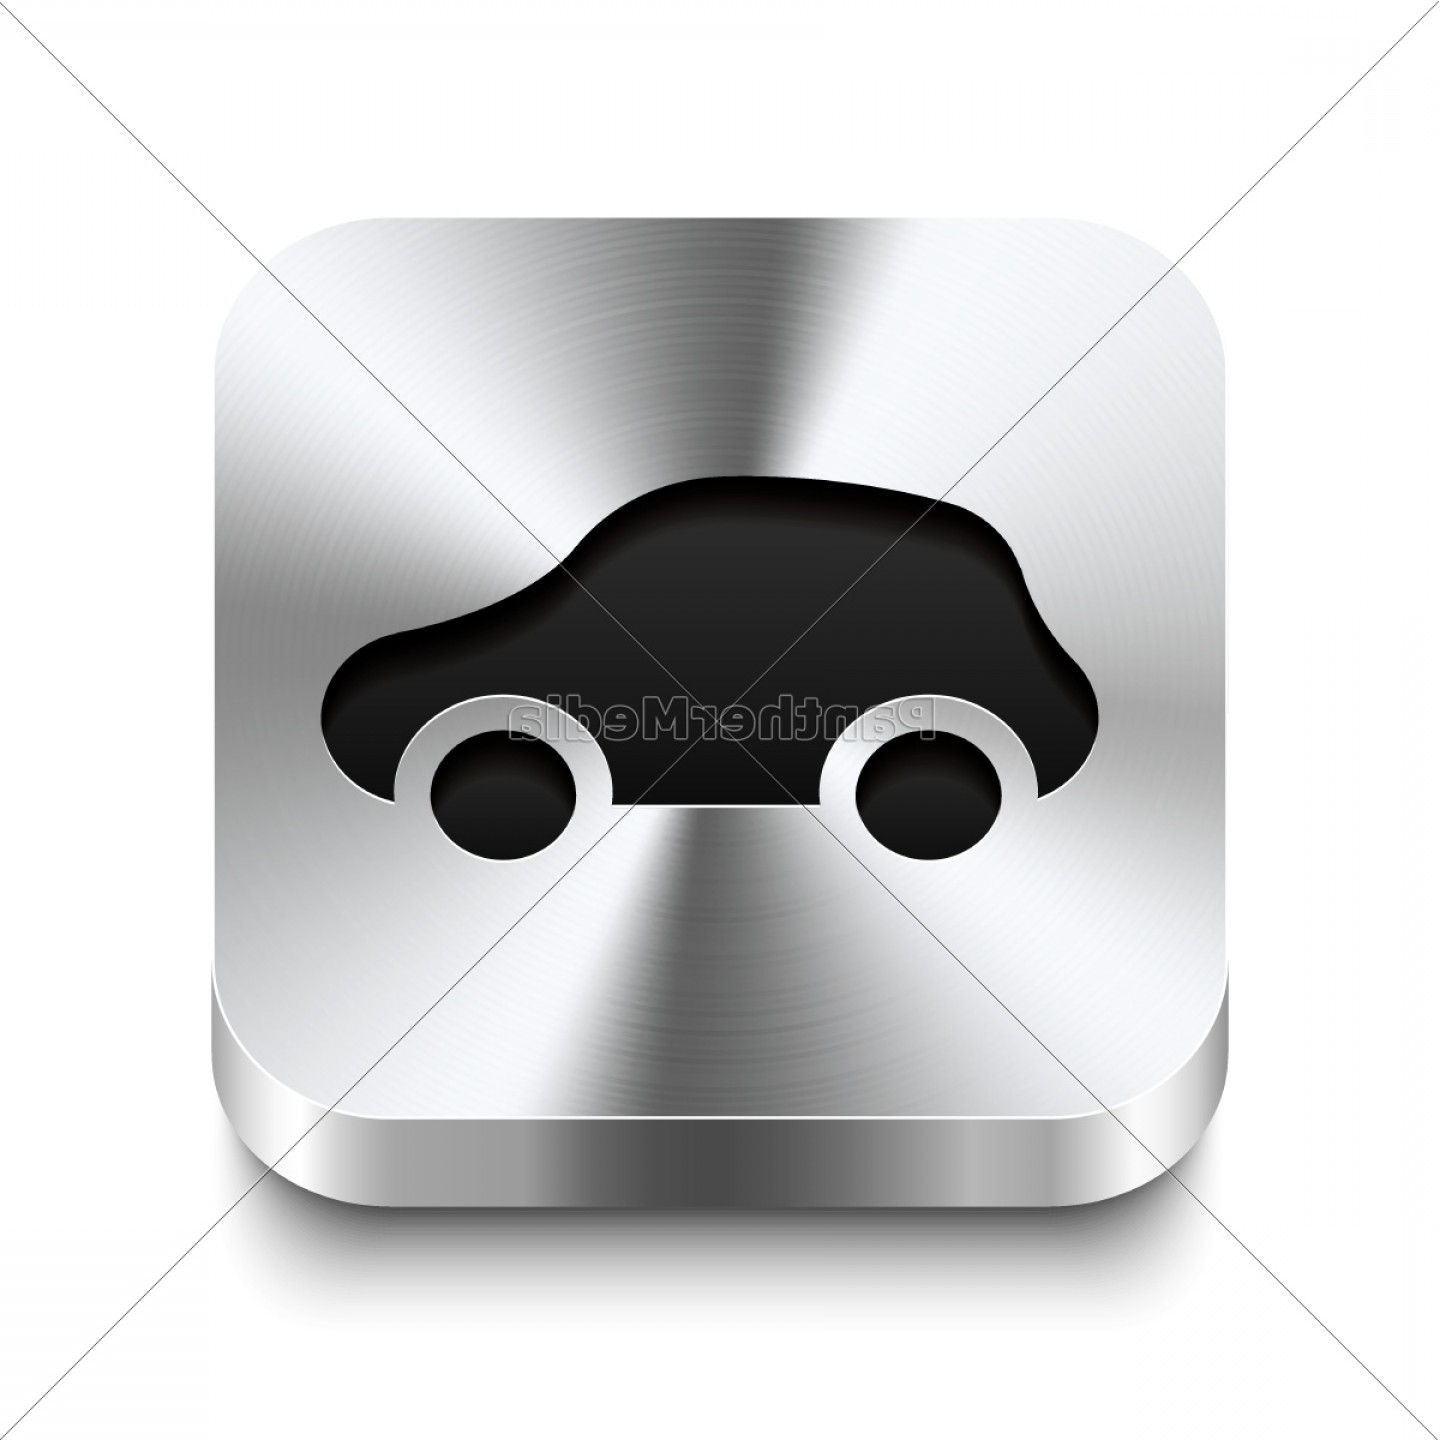 Metal Button Vector: Square Metal Button Perspektive Car